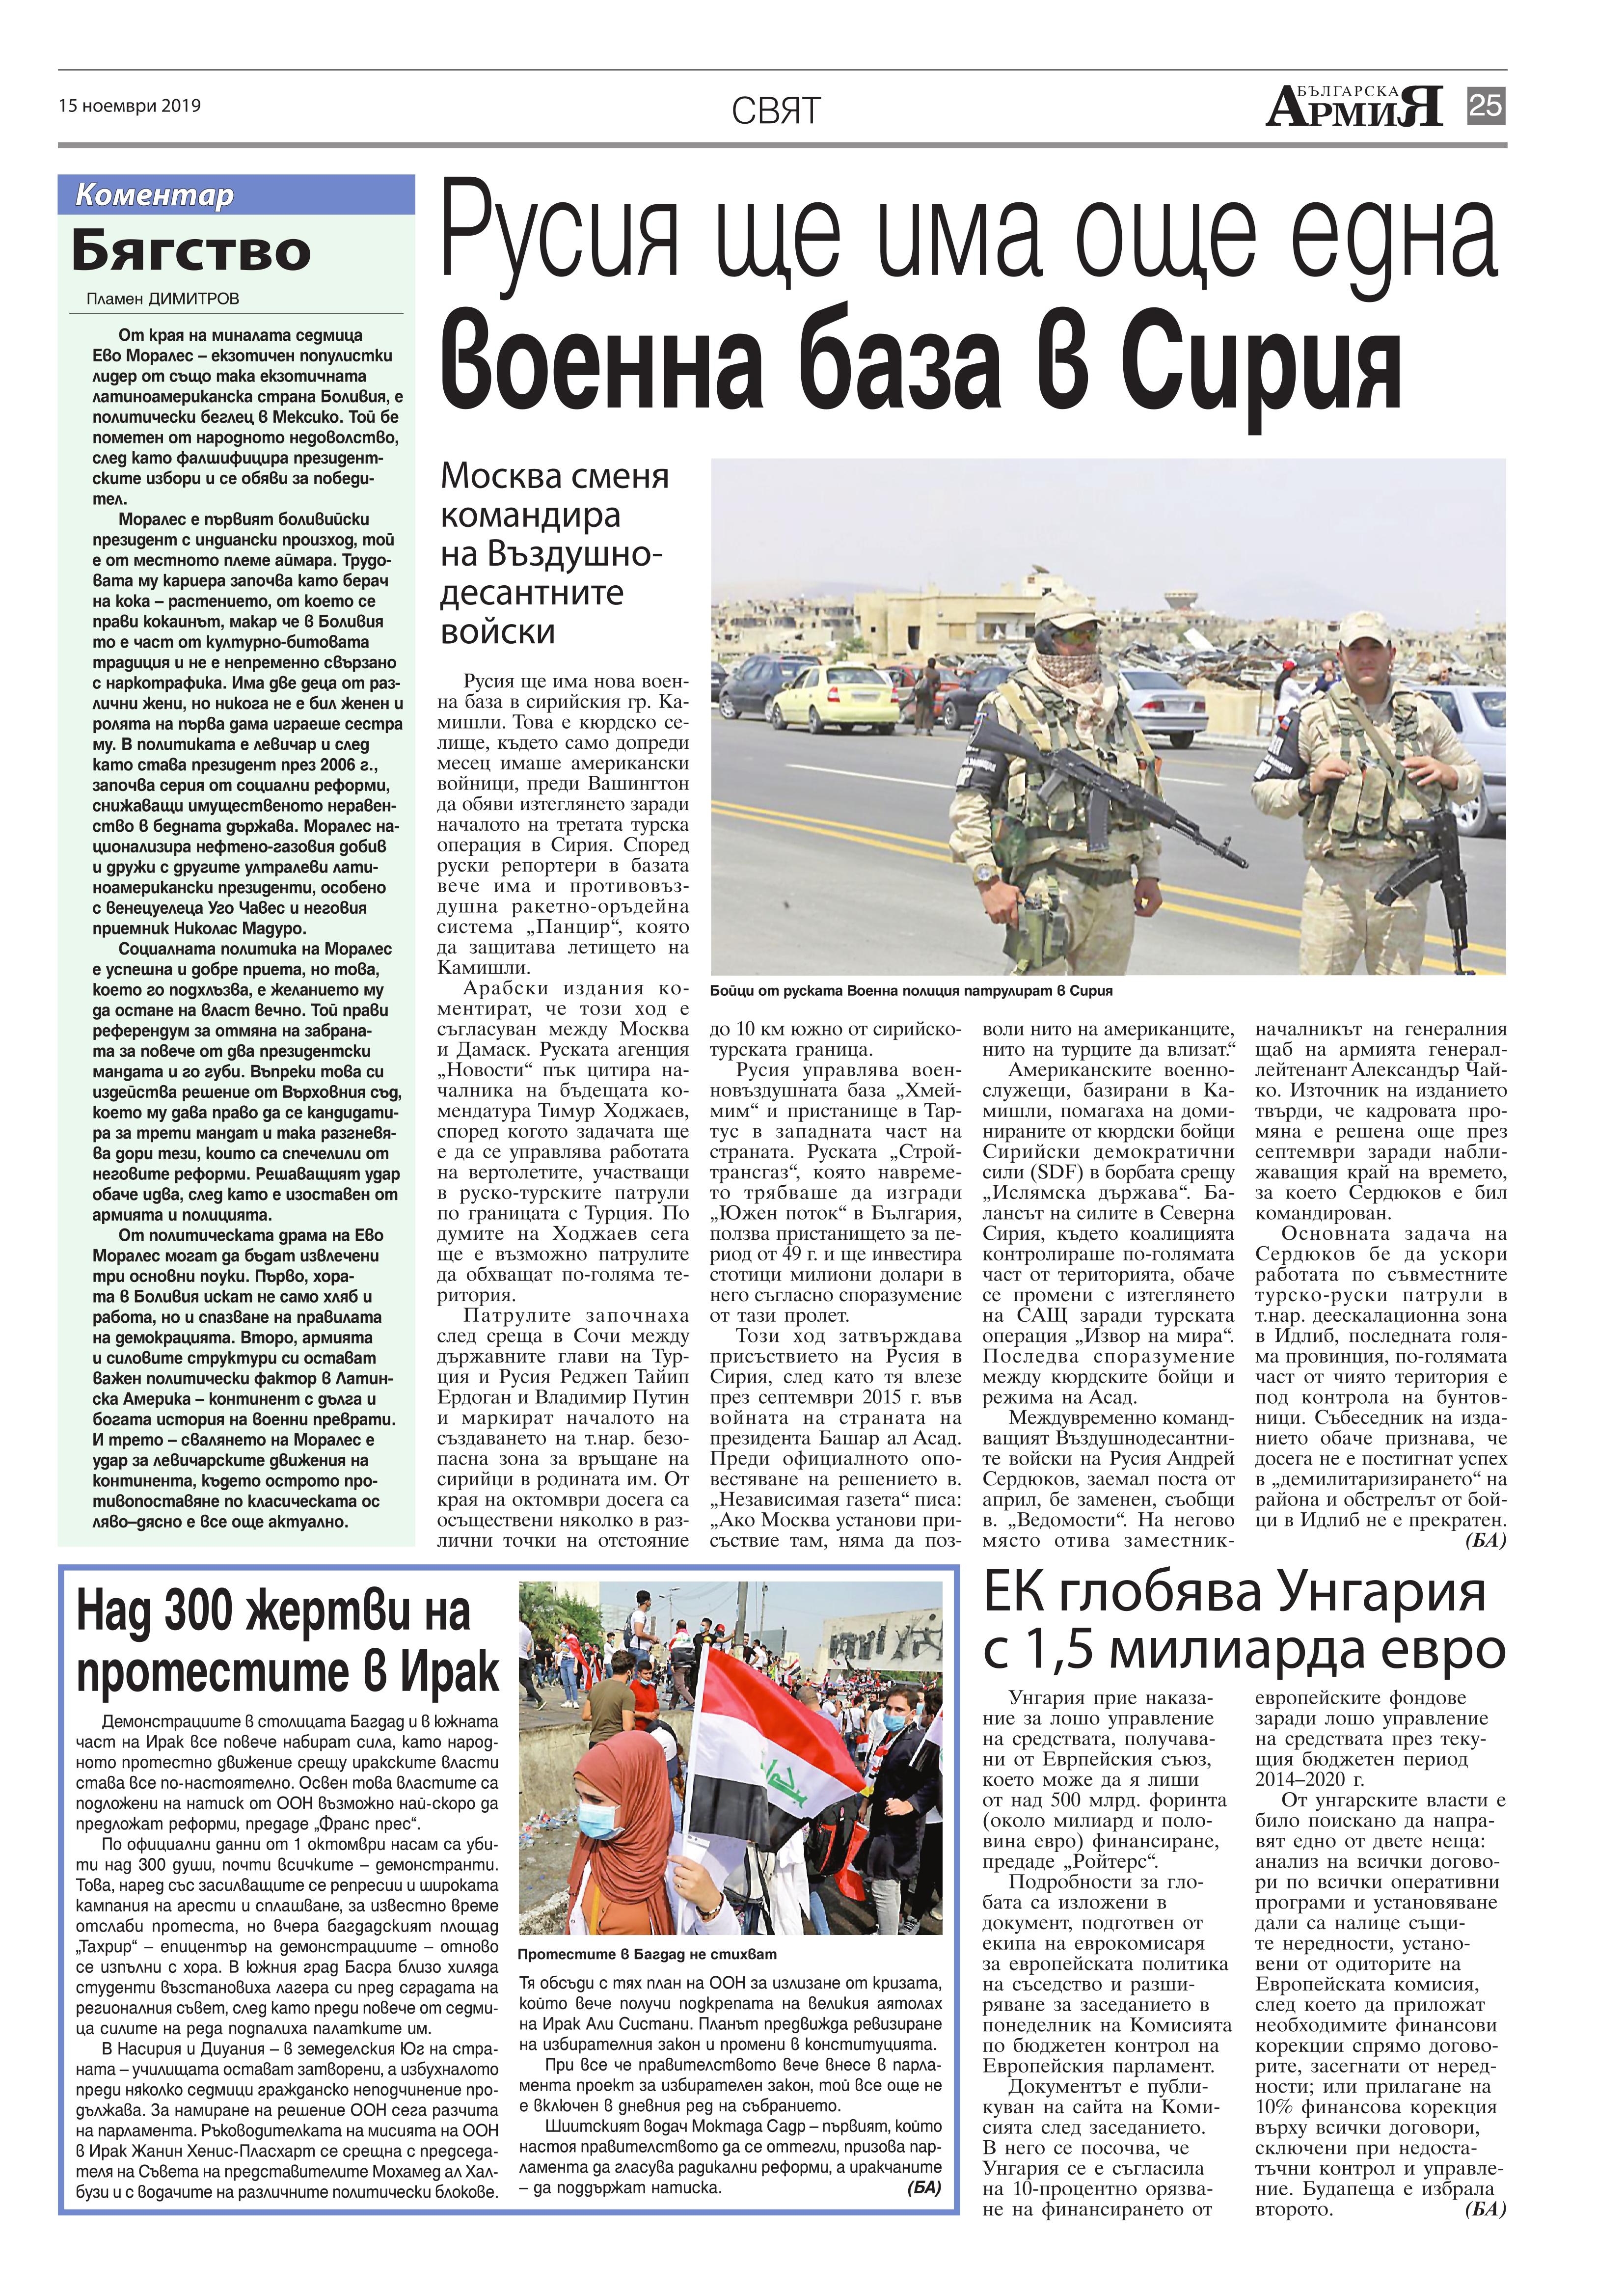 https://armymedia.bg/wp-content/uploads/2015/06/25.page1_-97.jpg